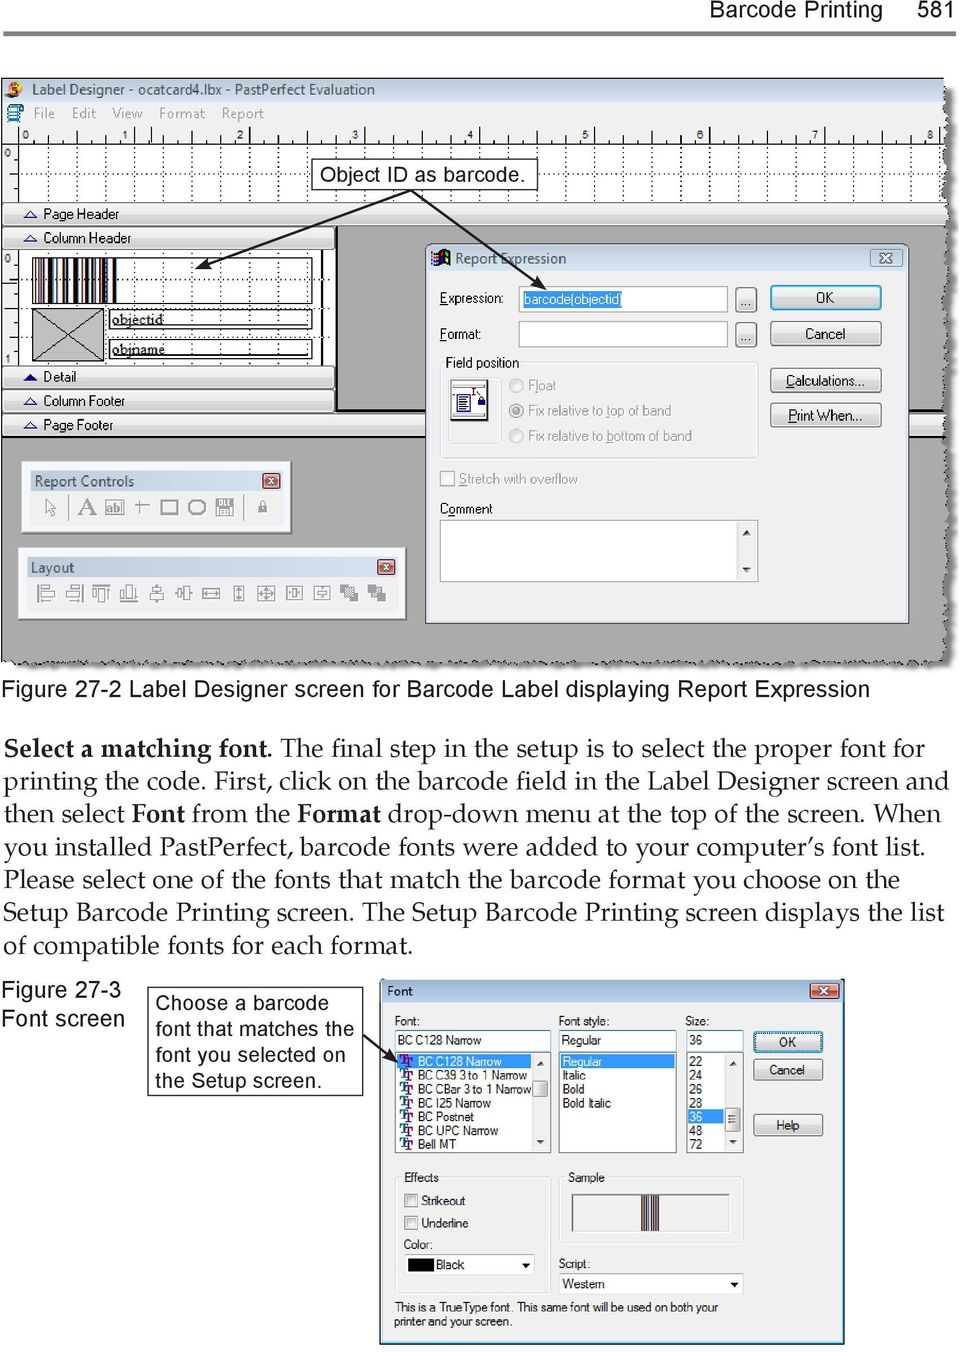 First, click on the barcode field in the Label Designer screen and then select Font from the Format drop-down menu at the top of the screen.